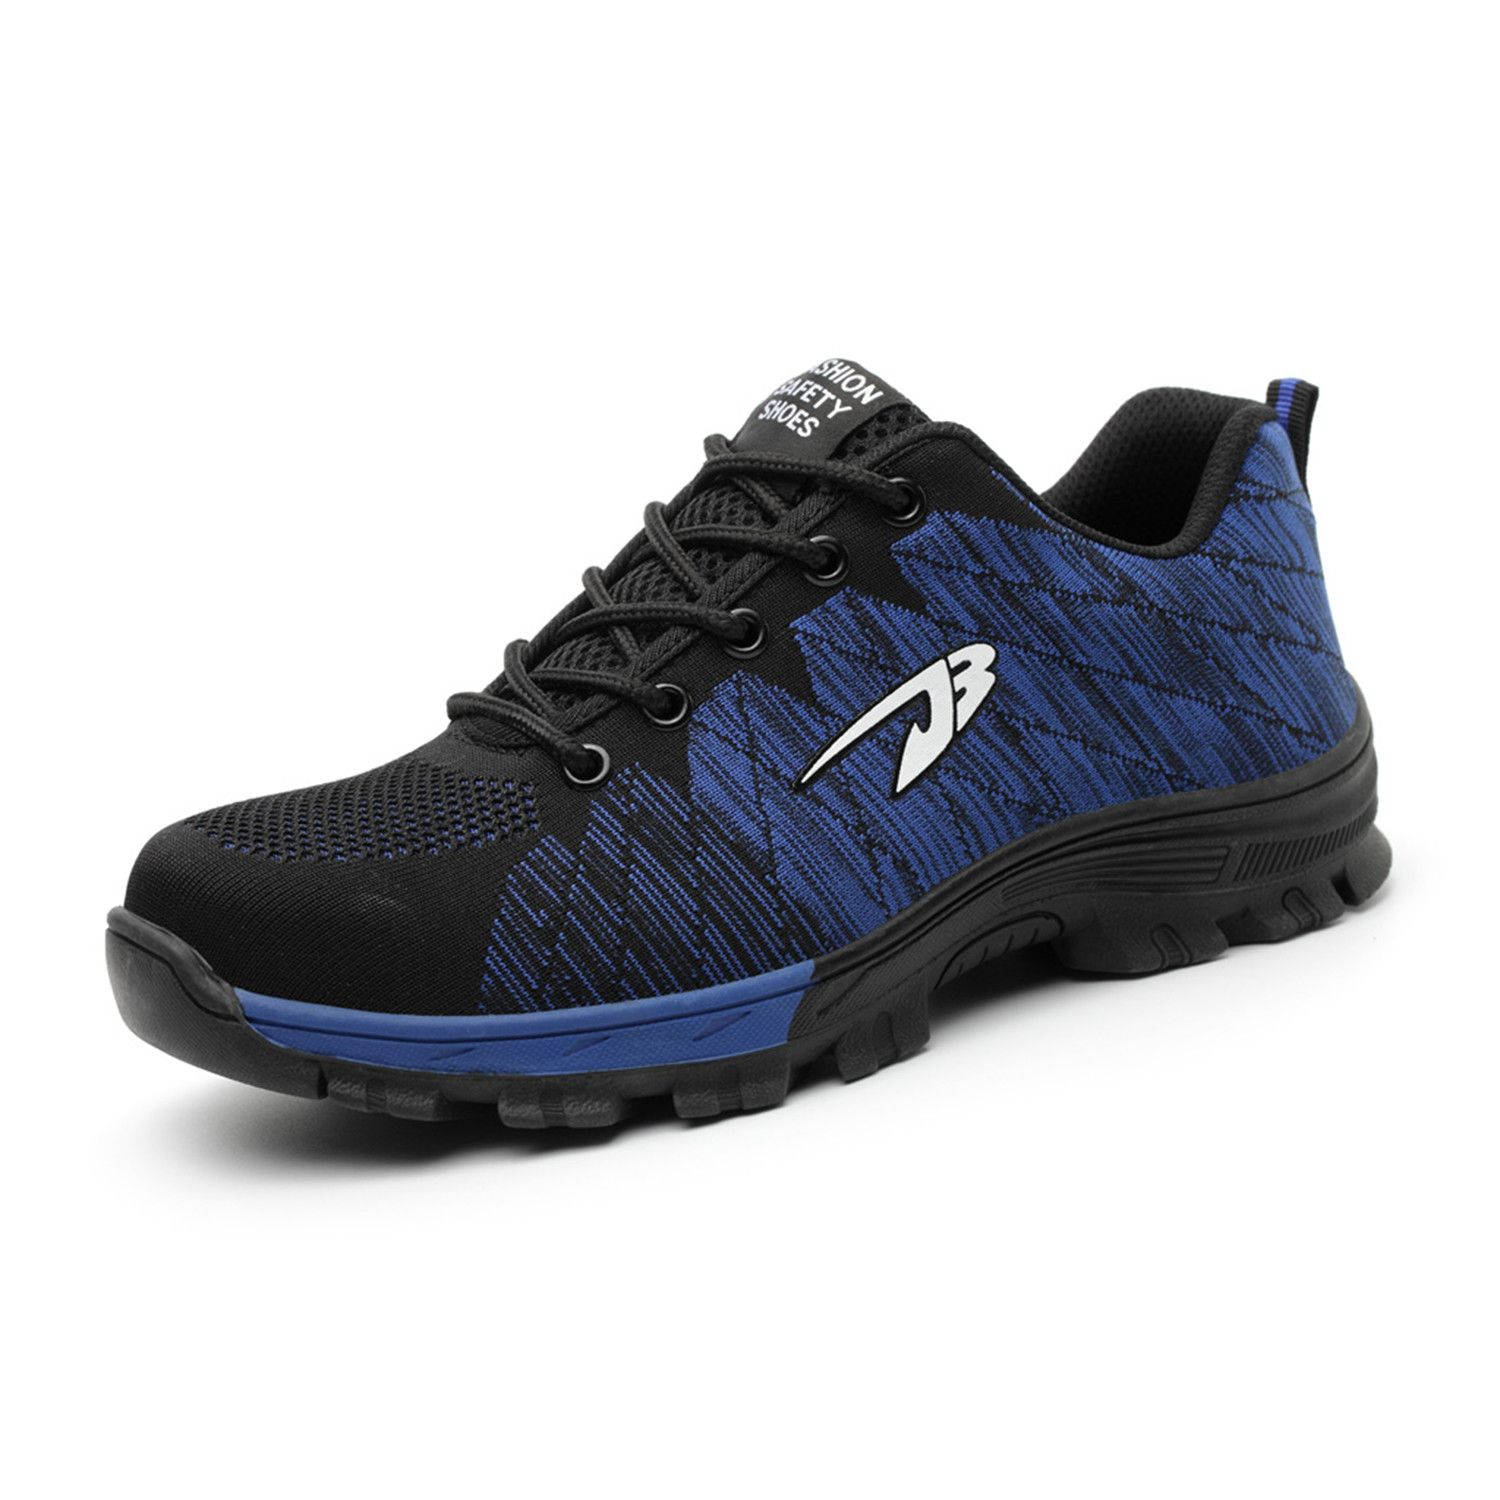 Airwalk // Blue in 2020 Work shoes women, Safety shoes